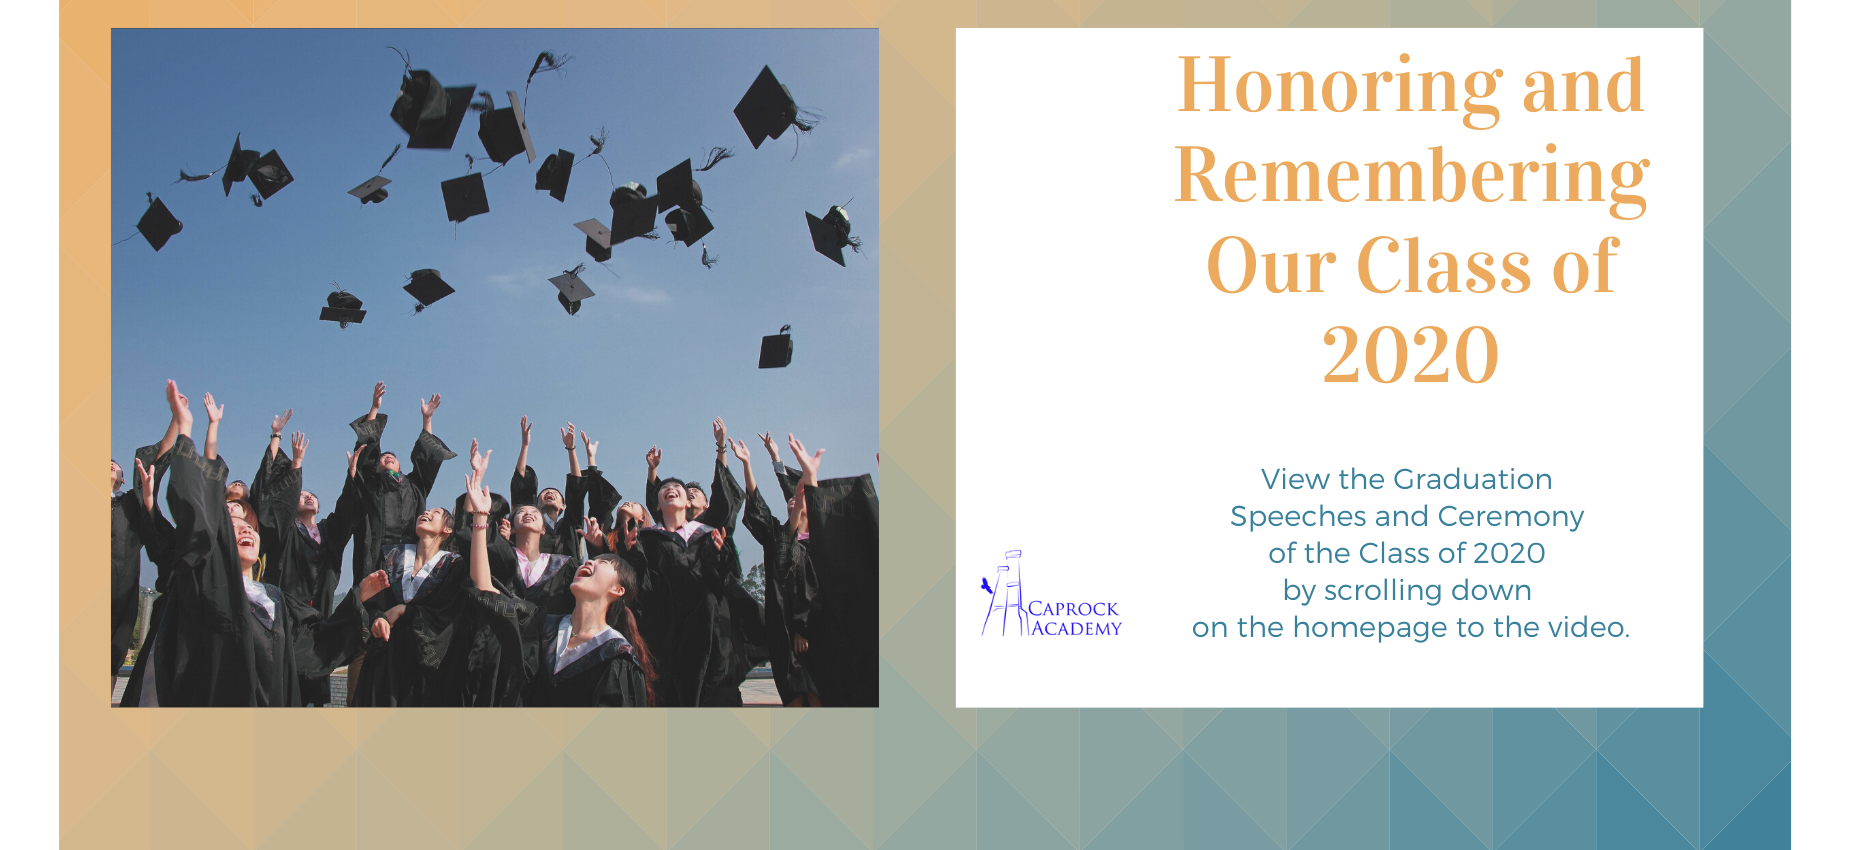 View the compilation of graduation ceremonies and student speeches from 2020.